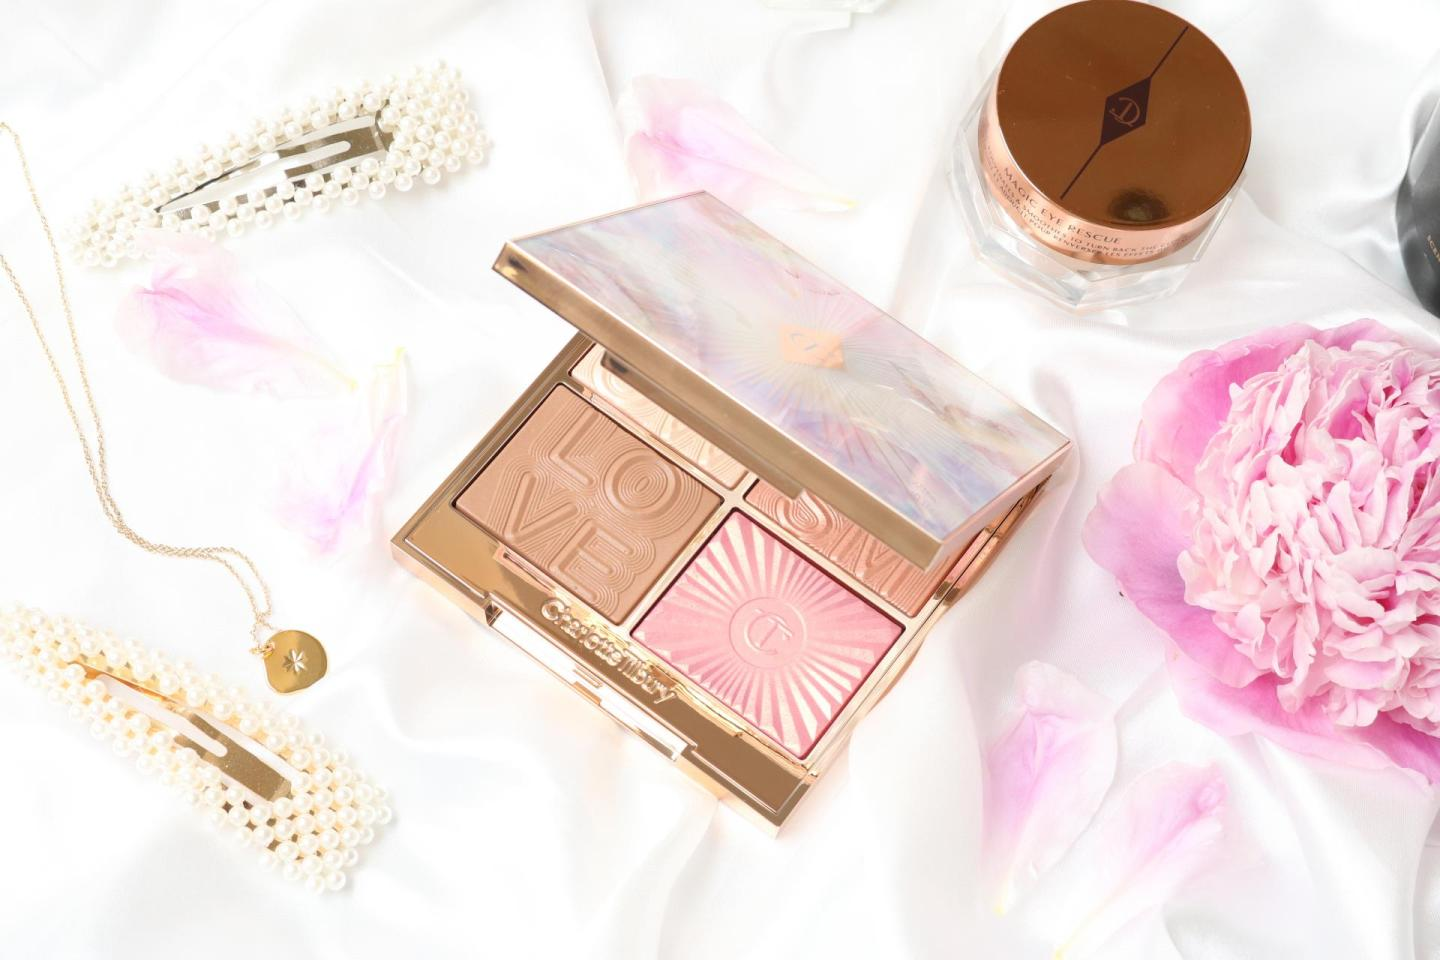 Charlotte Tilbury Glowgasm Face Palette open on a silk sheet